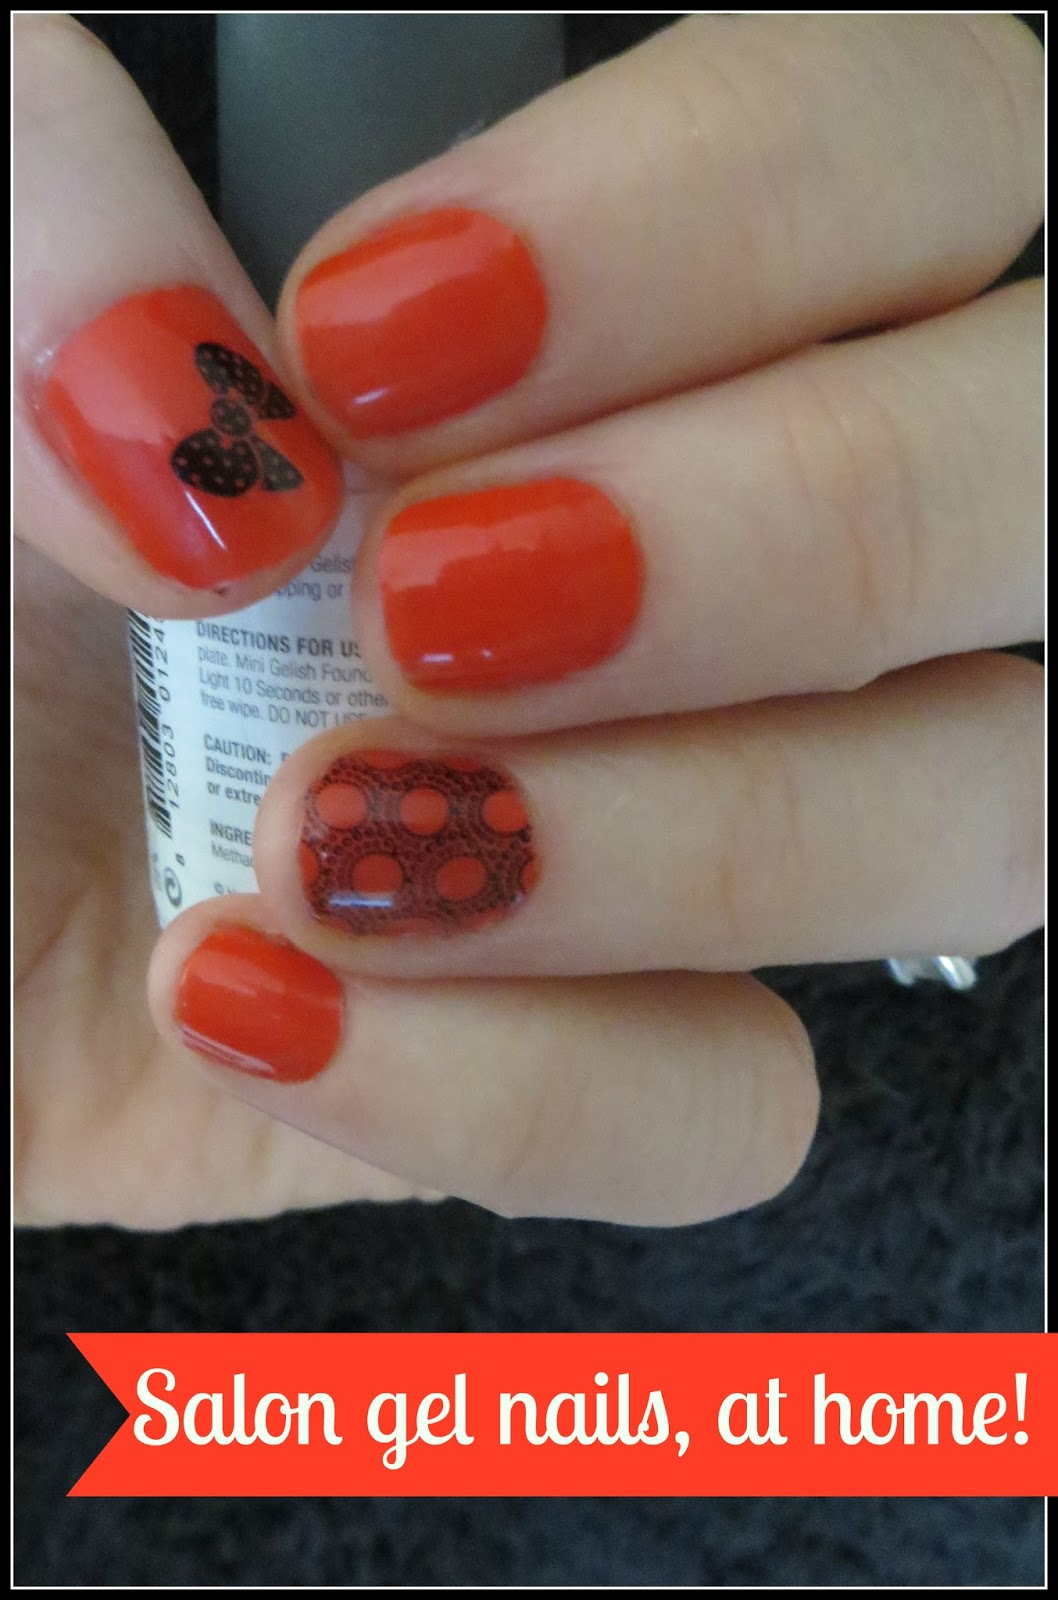 Our little loves salon gel nails and nail art at home nails may look like i go to the salon to get them done i do them myself yep professional looking gel manicured nails on the regular solutioingenieria Image collections